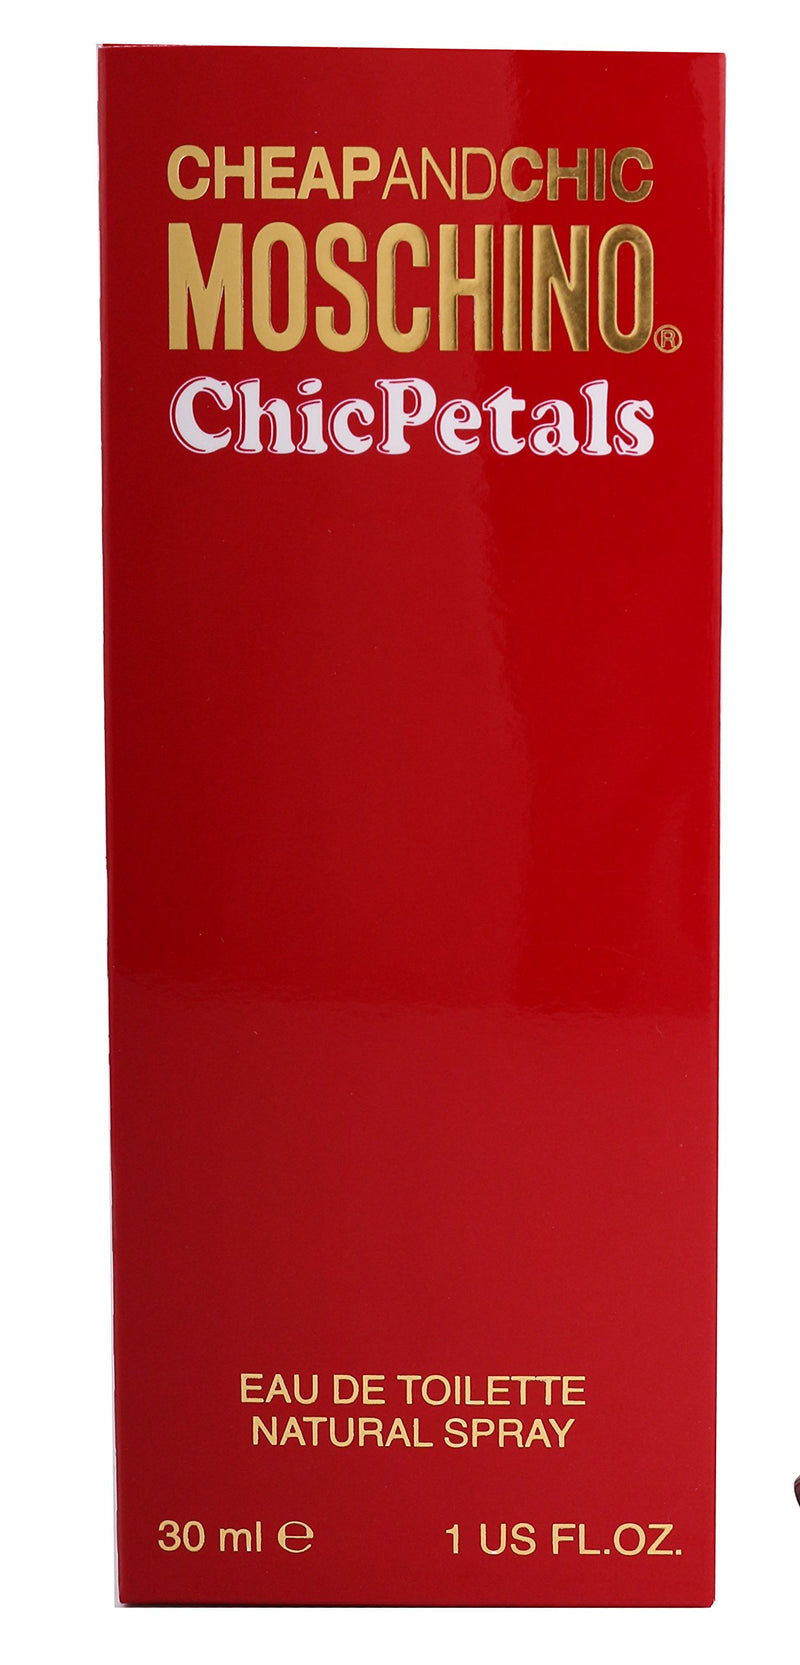 Moschino Cheap and Chic Petals Eau de Toilette Spray for Woman 30 ml